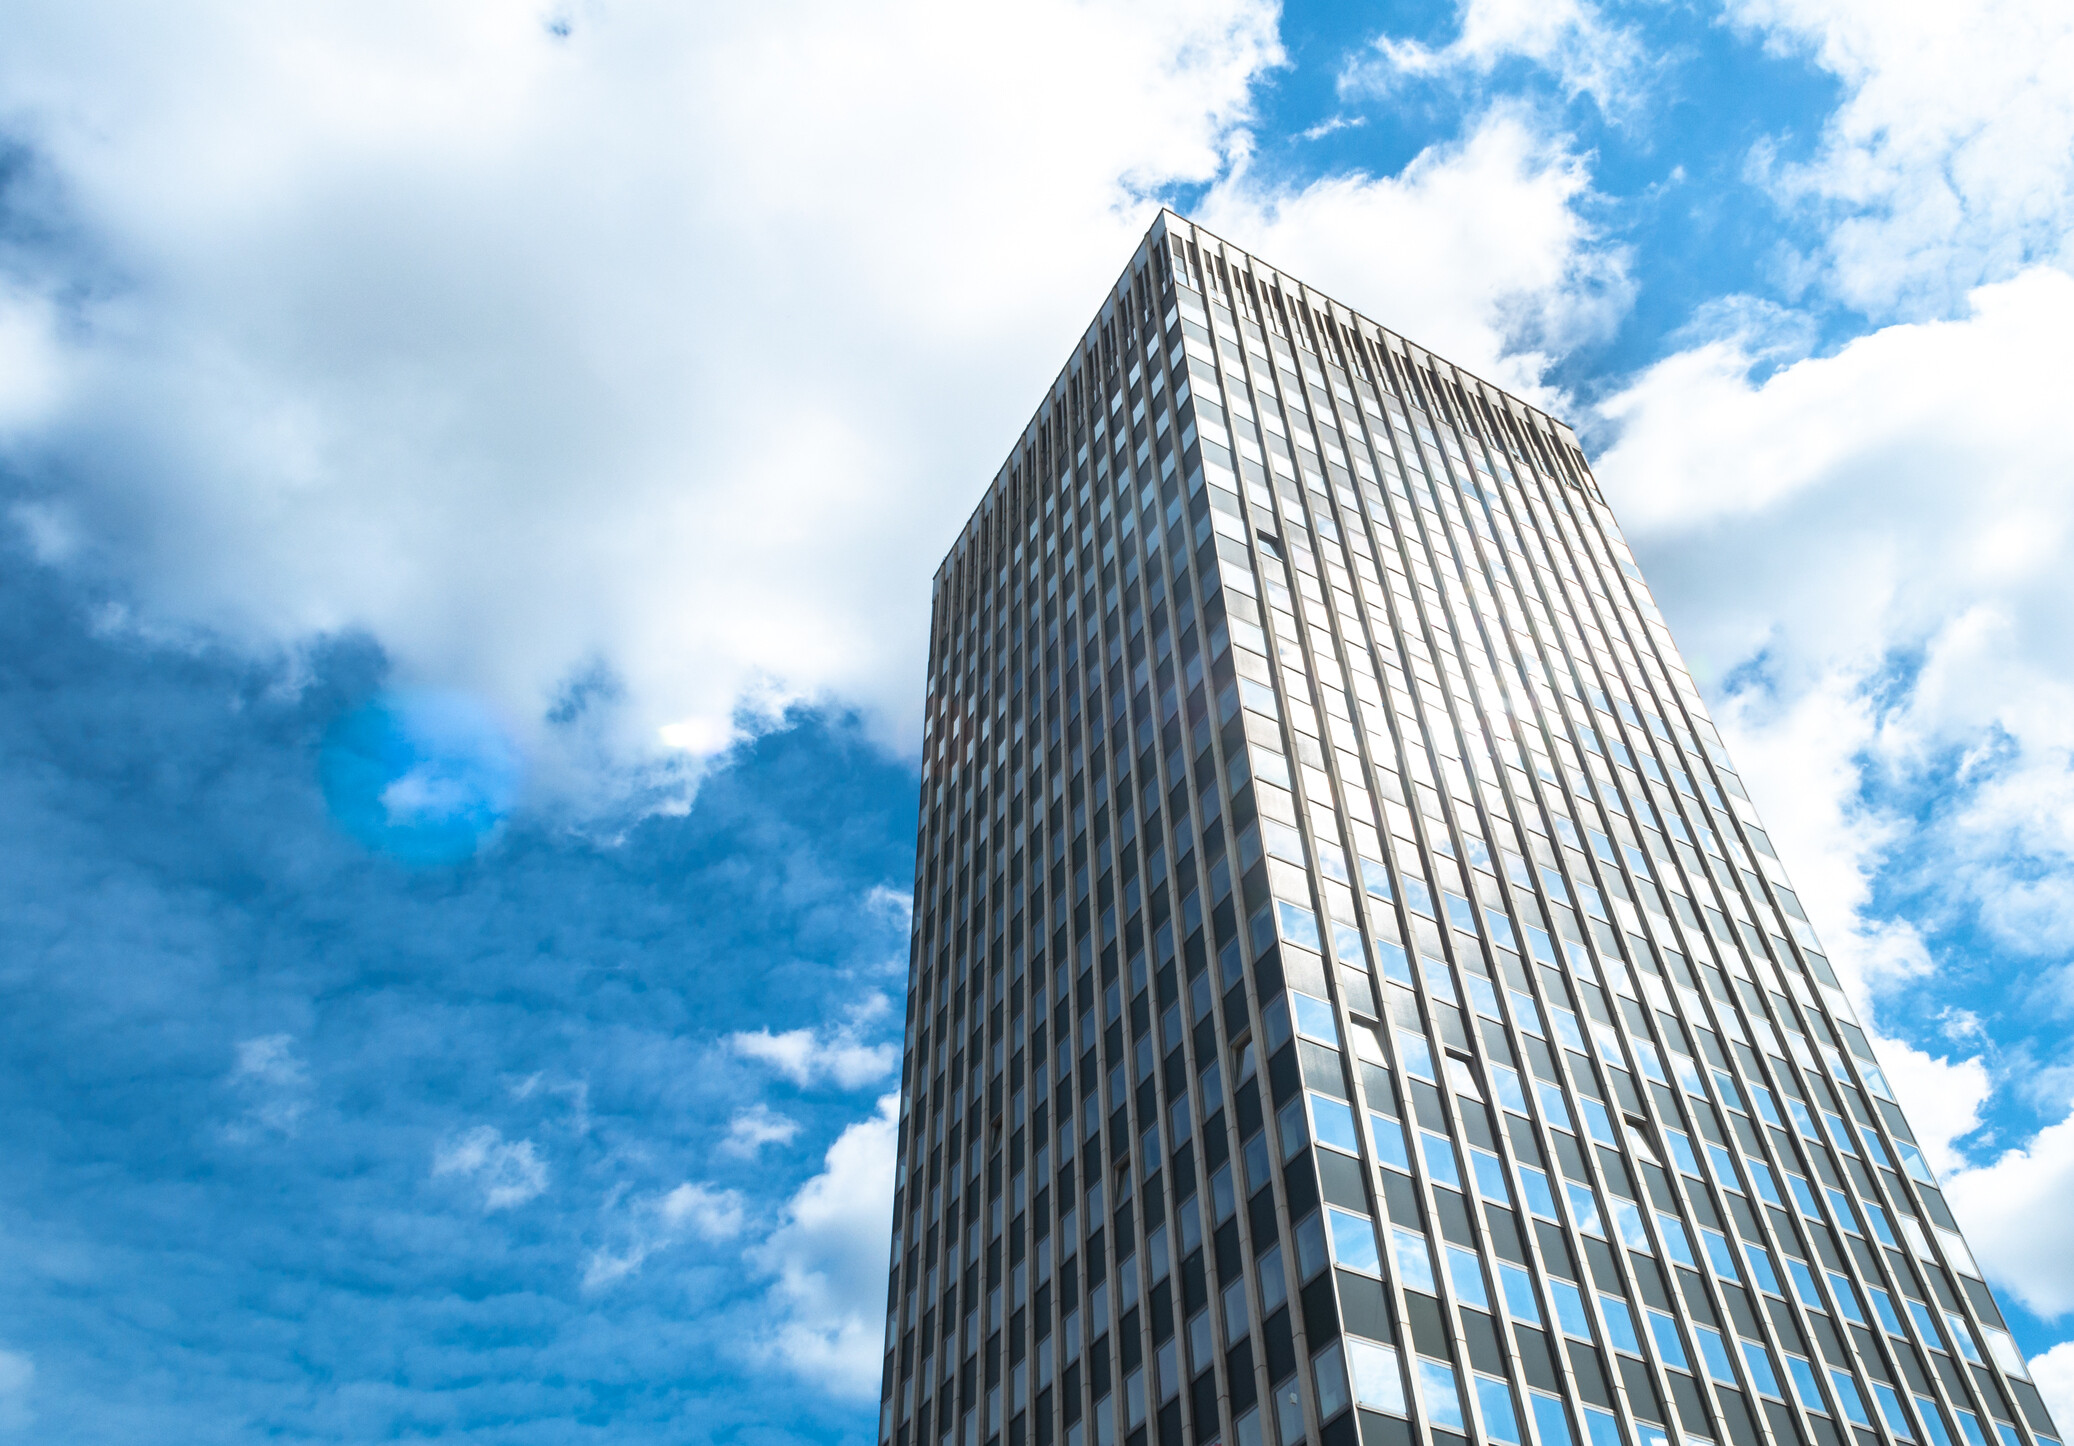 Towering SIngle Office Block with Blue Sky and White Fluffy Clouds